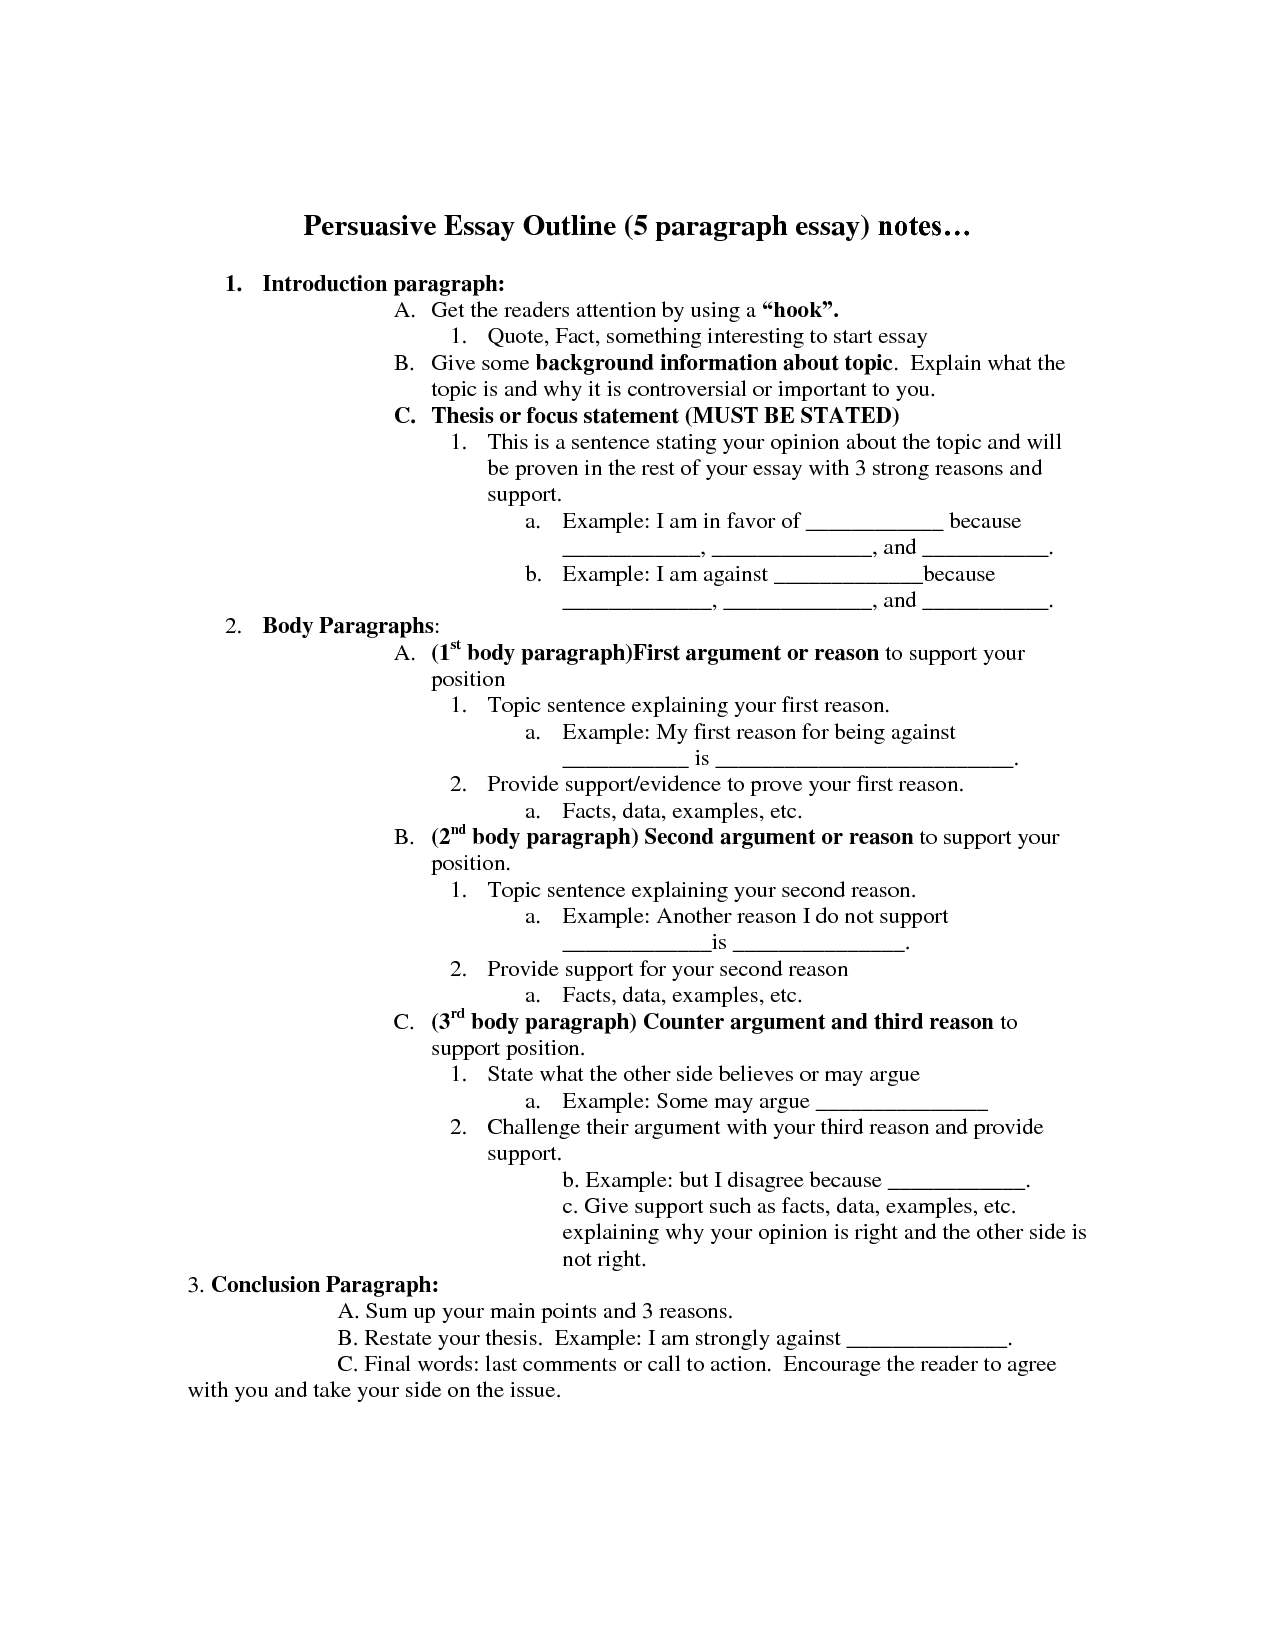 006 Persuasive Essay Outline Unbelievable Doc Template Middle School Pdf Full